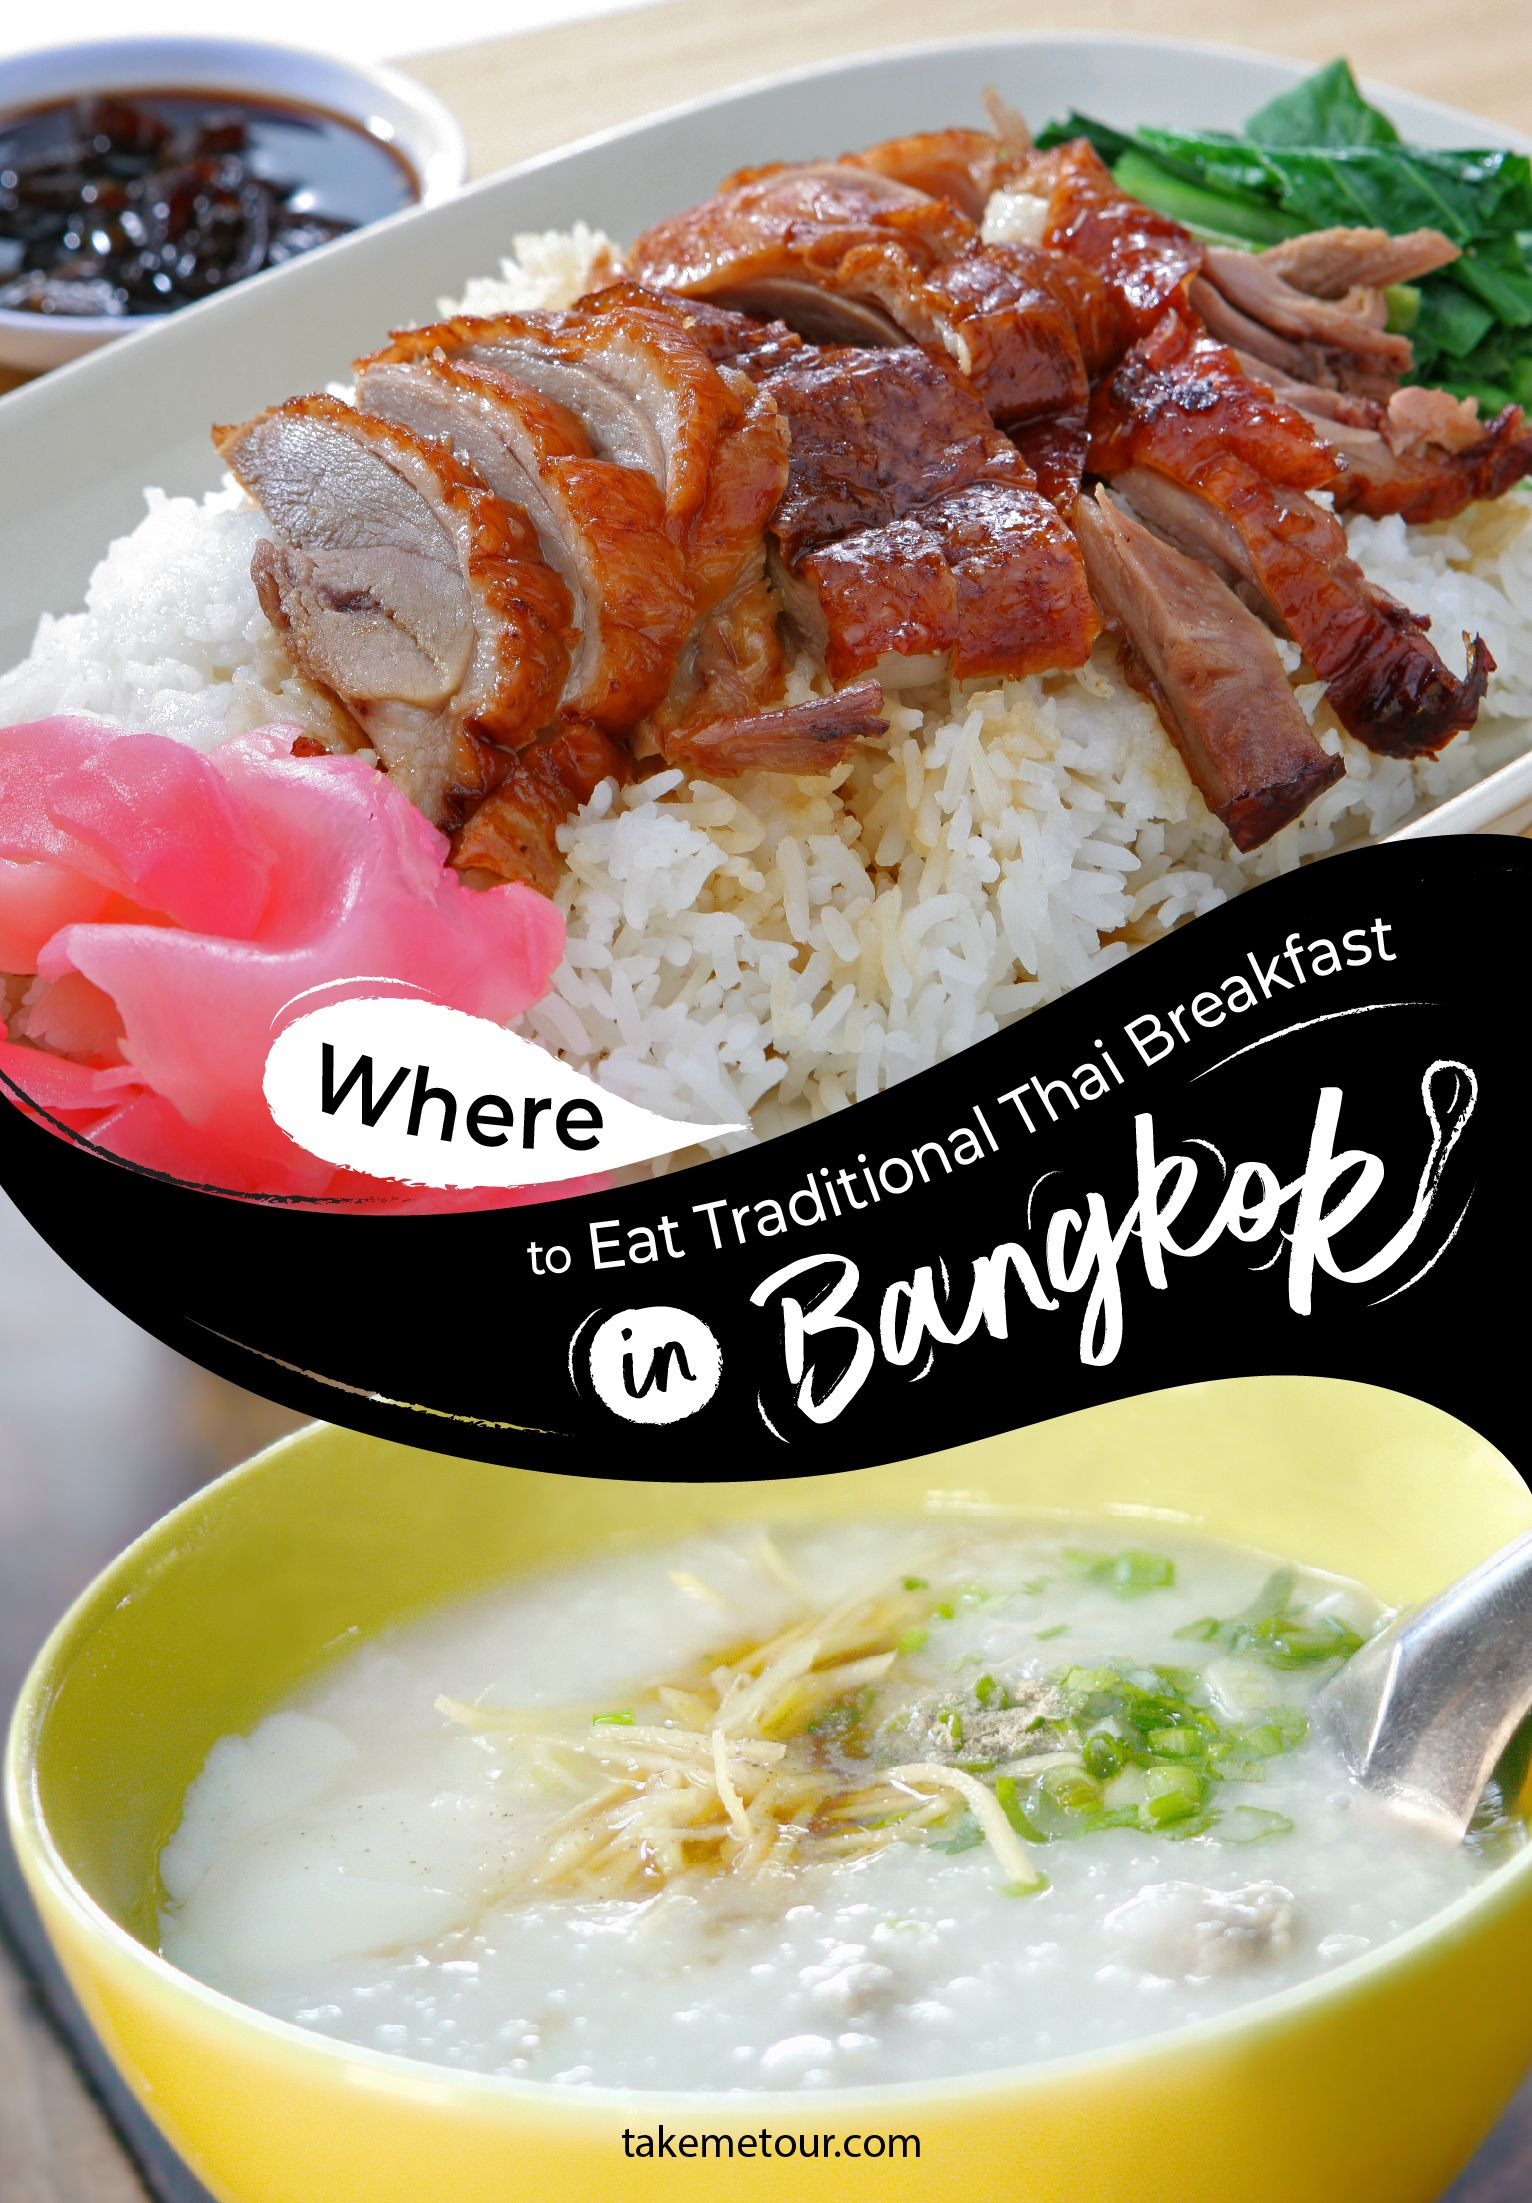 Drop everything and relax where to eat traditional thai